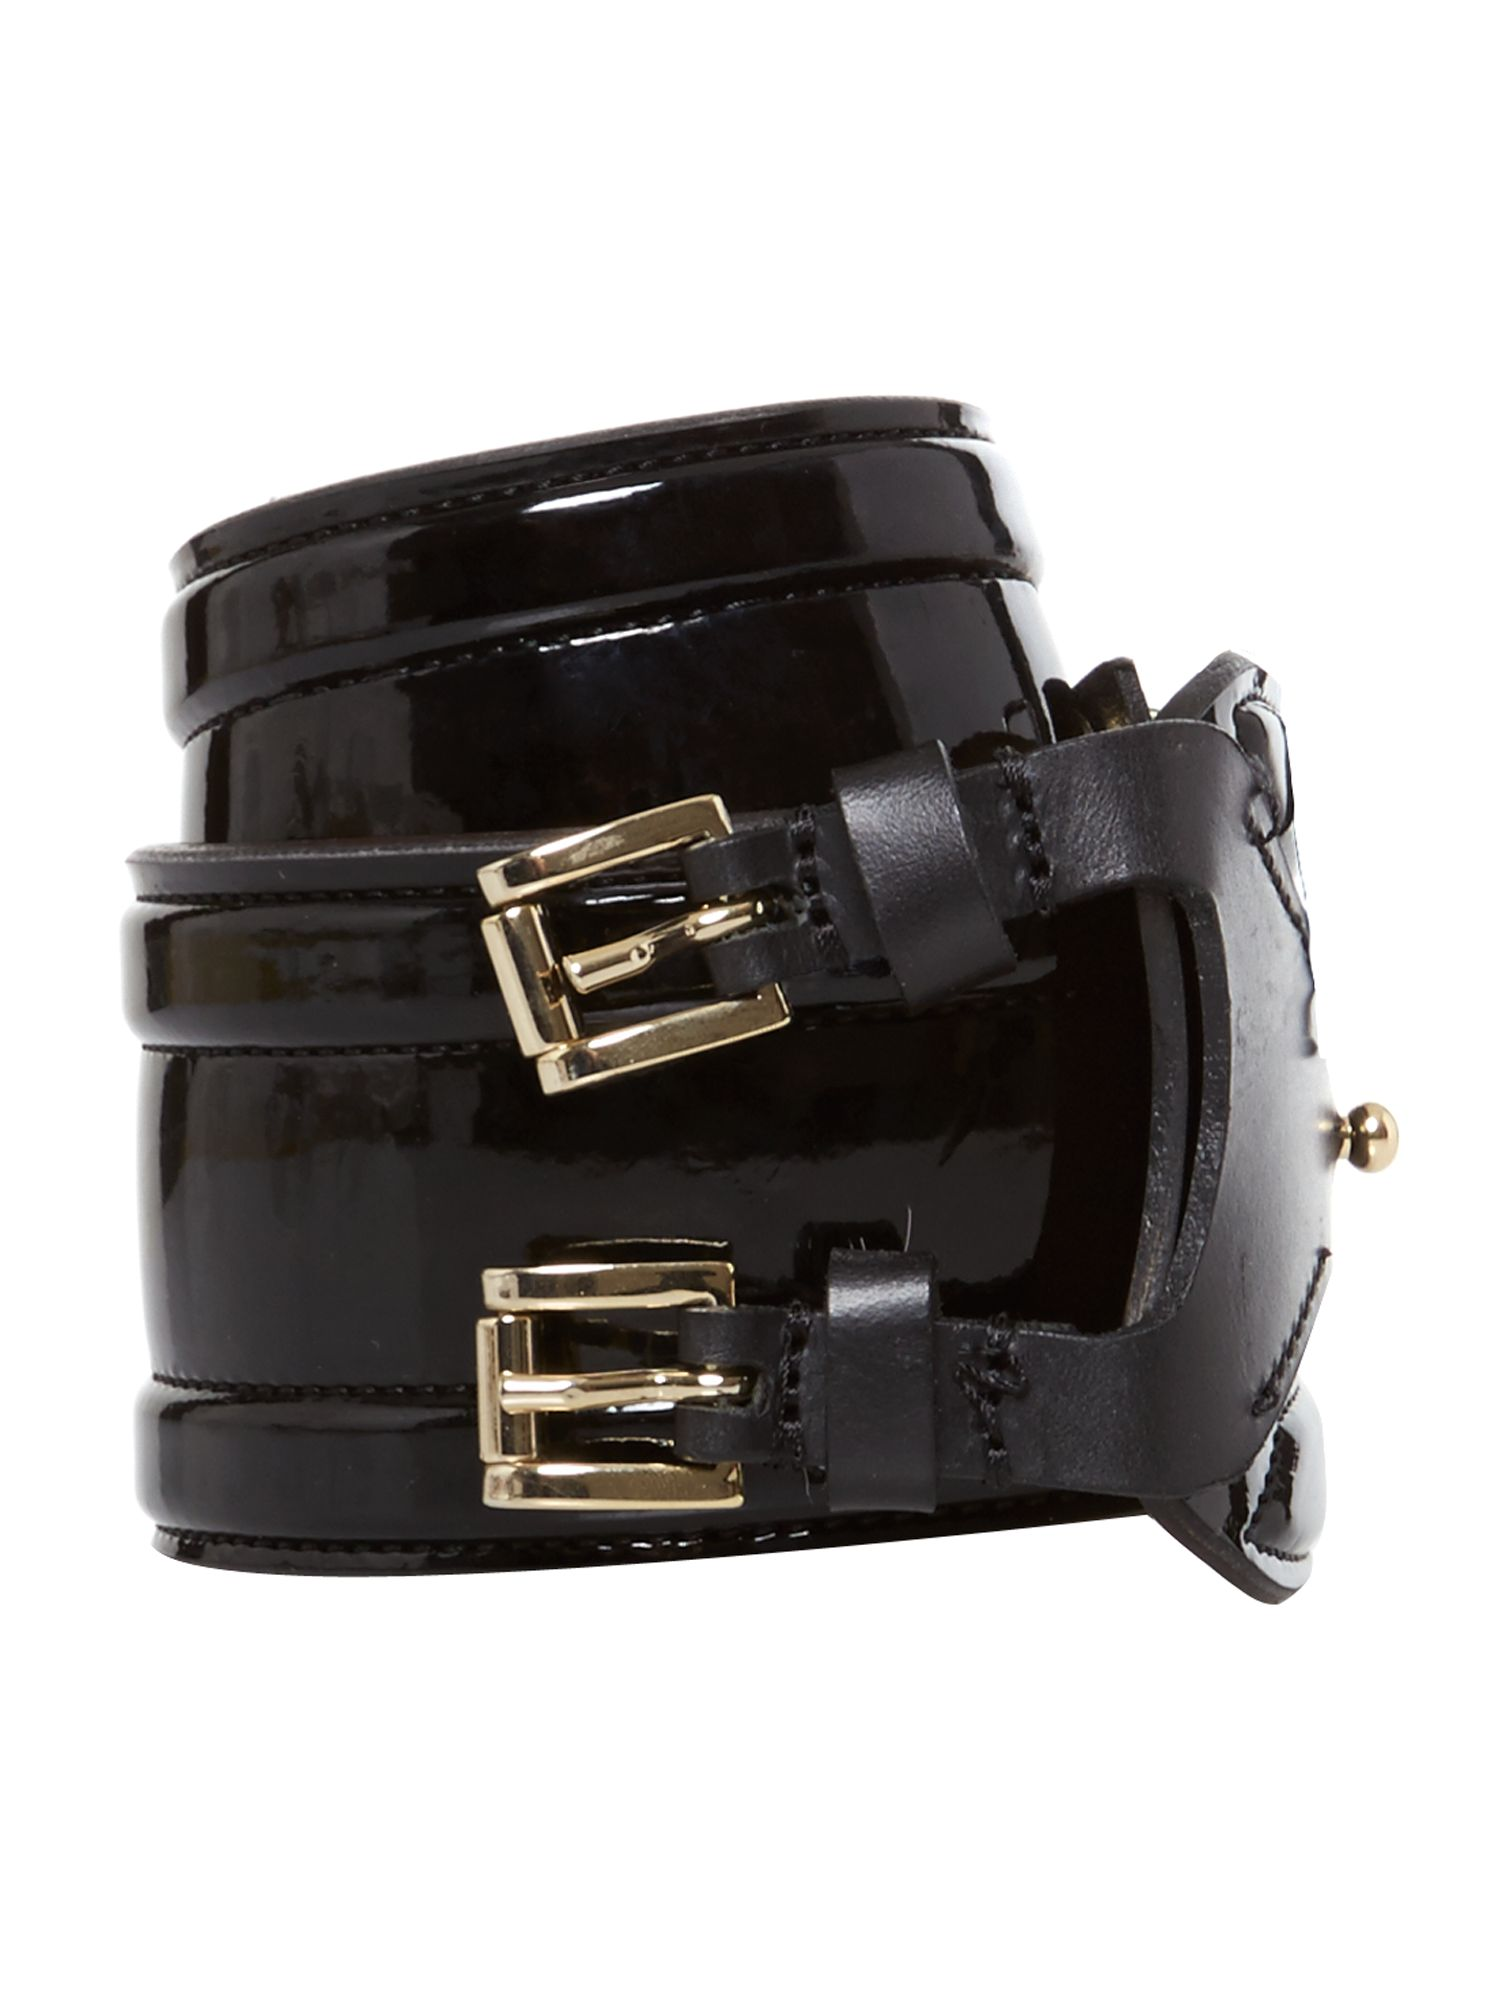 Patent leather bombe belt